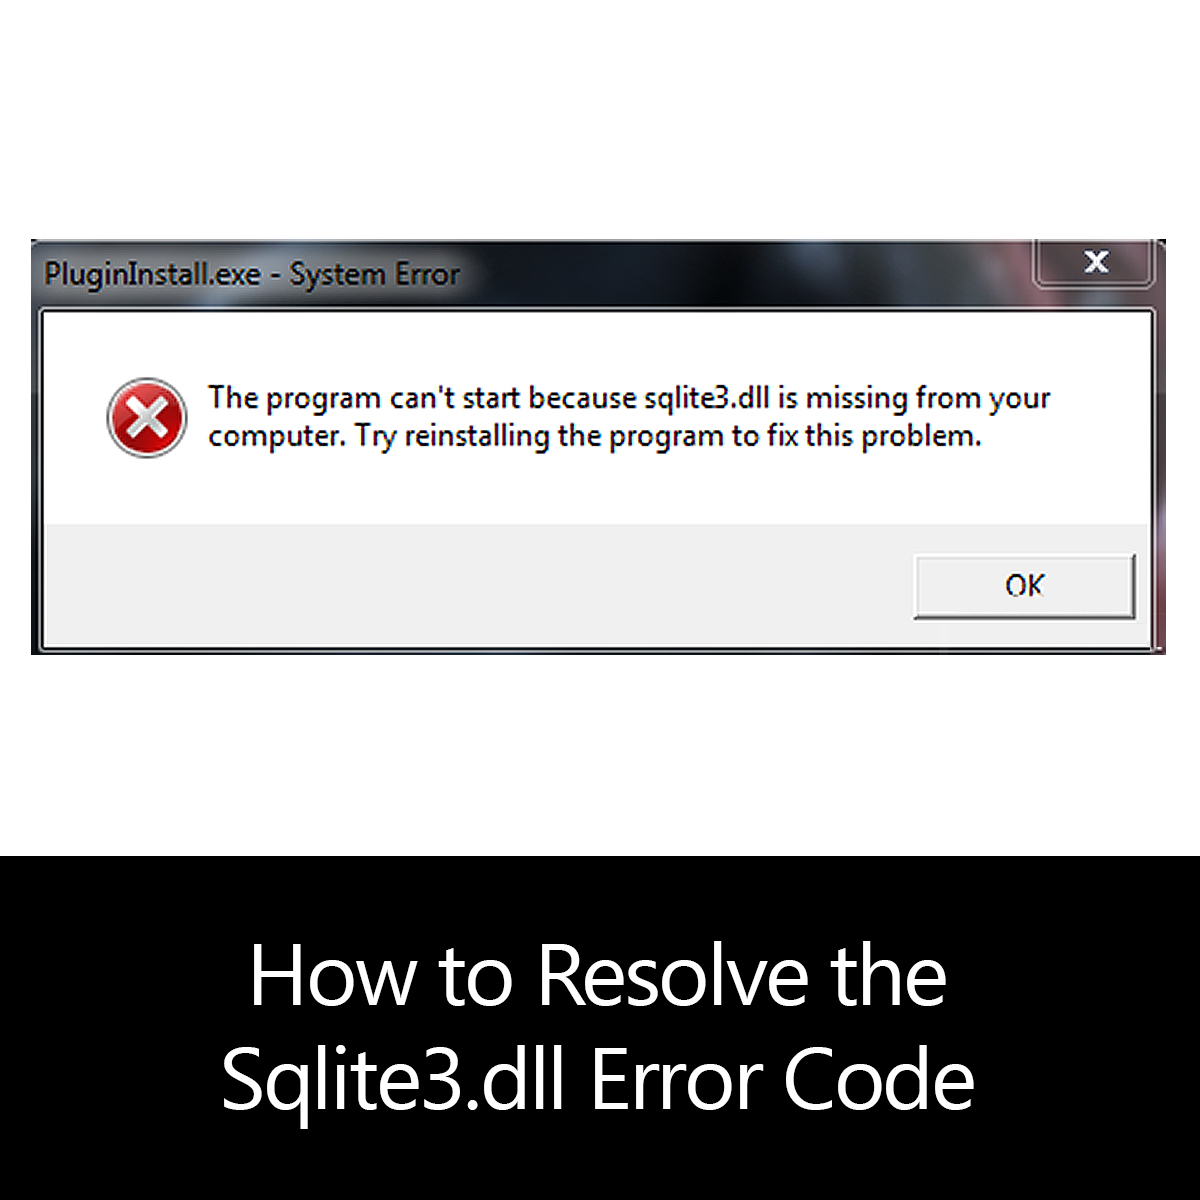 How to Resolve the Sqlite3.dll Error Code